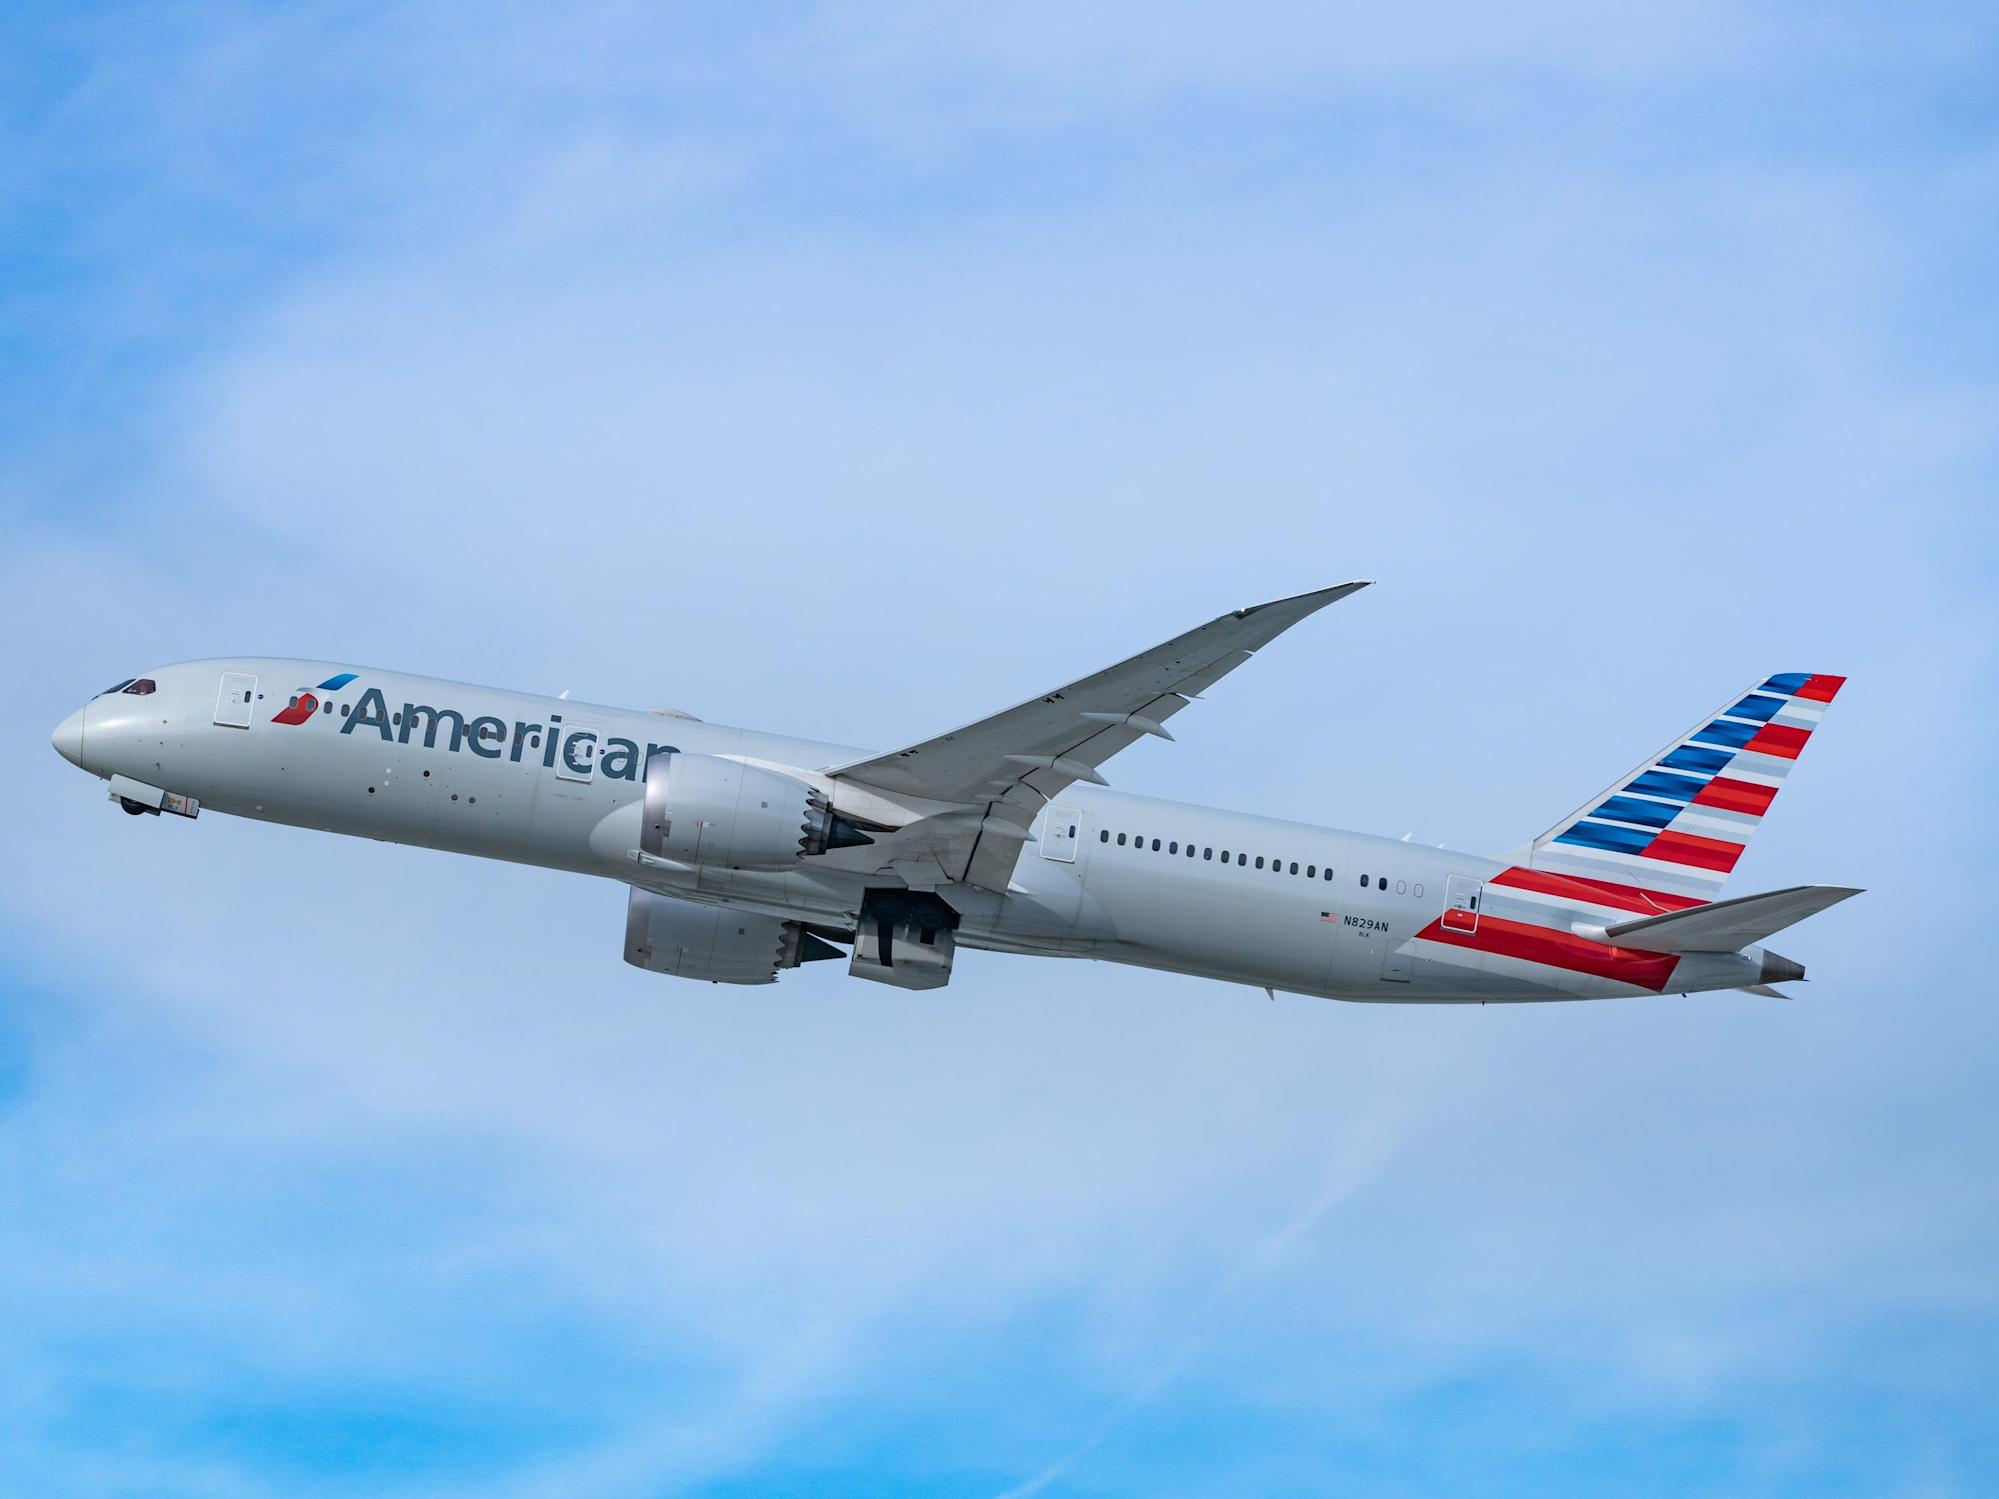 American Airlines flight diverted to Phoenix after passengers fight over racial slur - Yahoo News